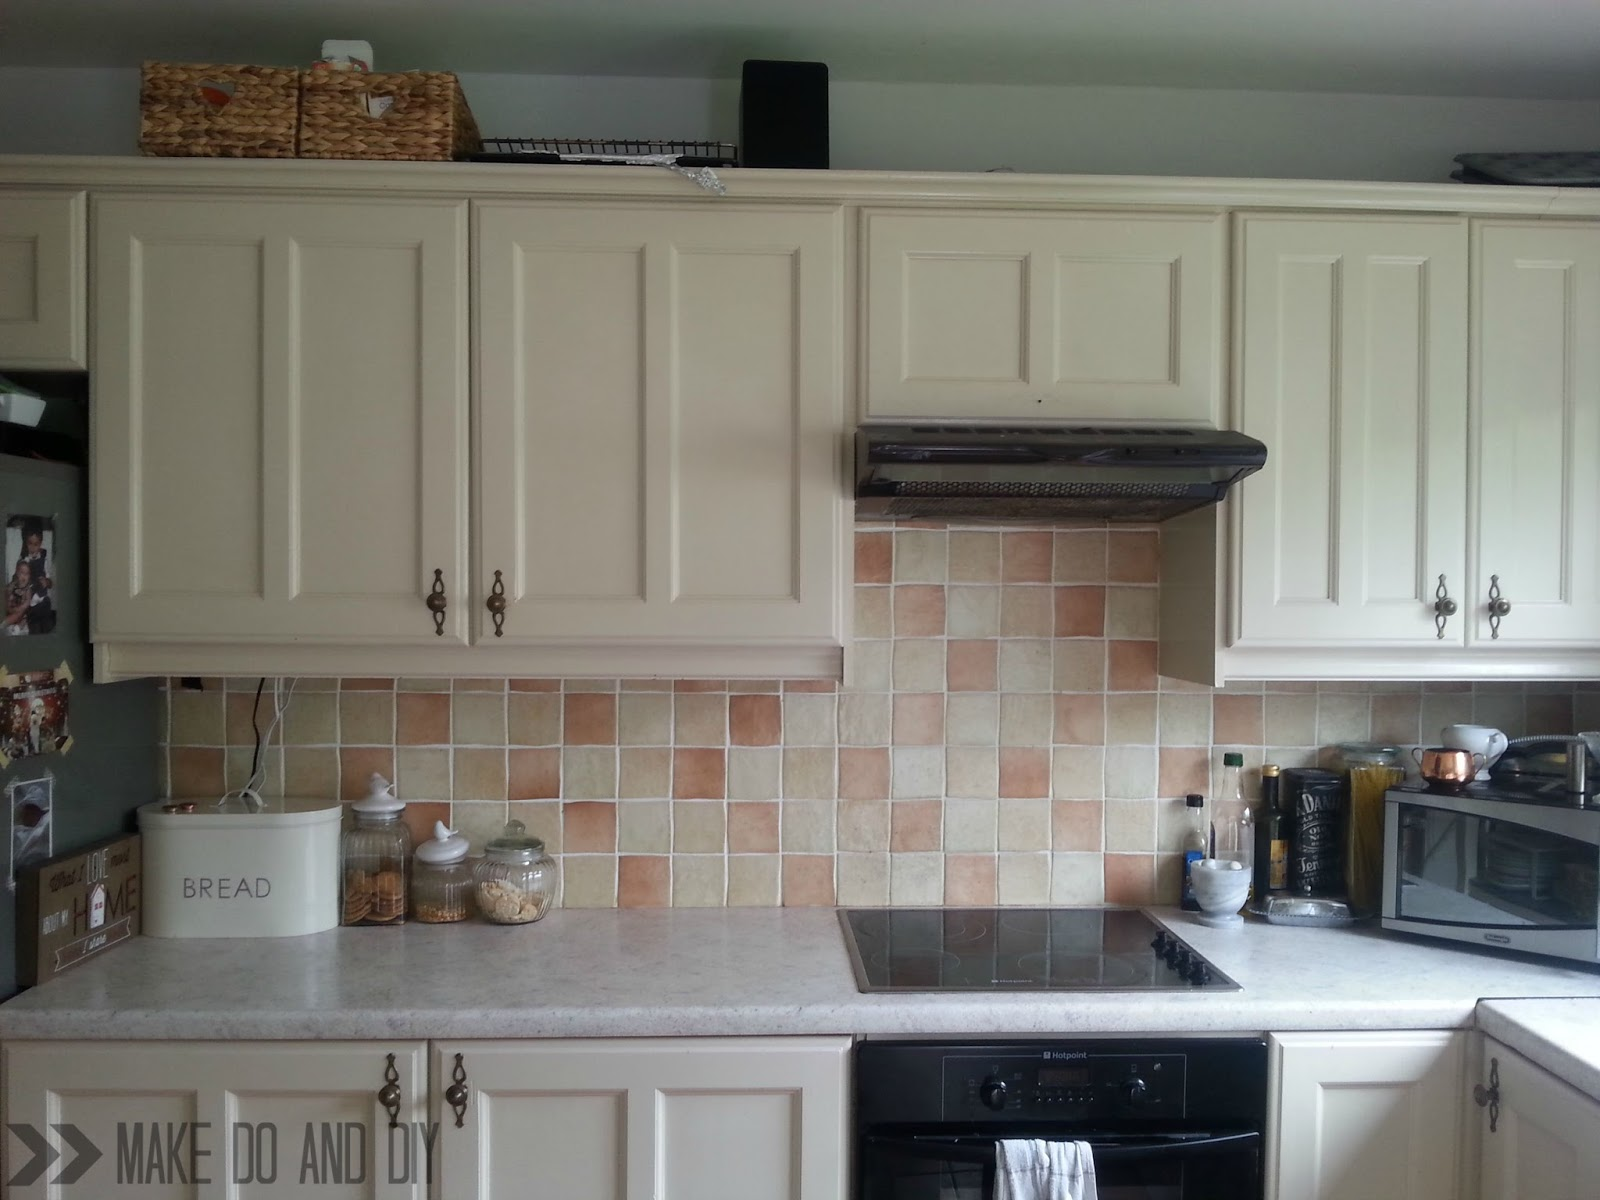 Kitchen Backsplash Easy Cheap painted tile backsplash-cover those ugly tiles! ~ make do and diy